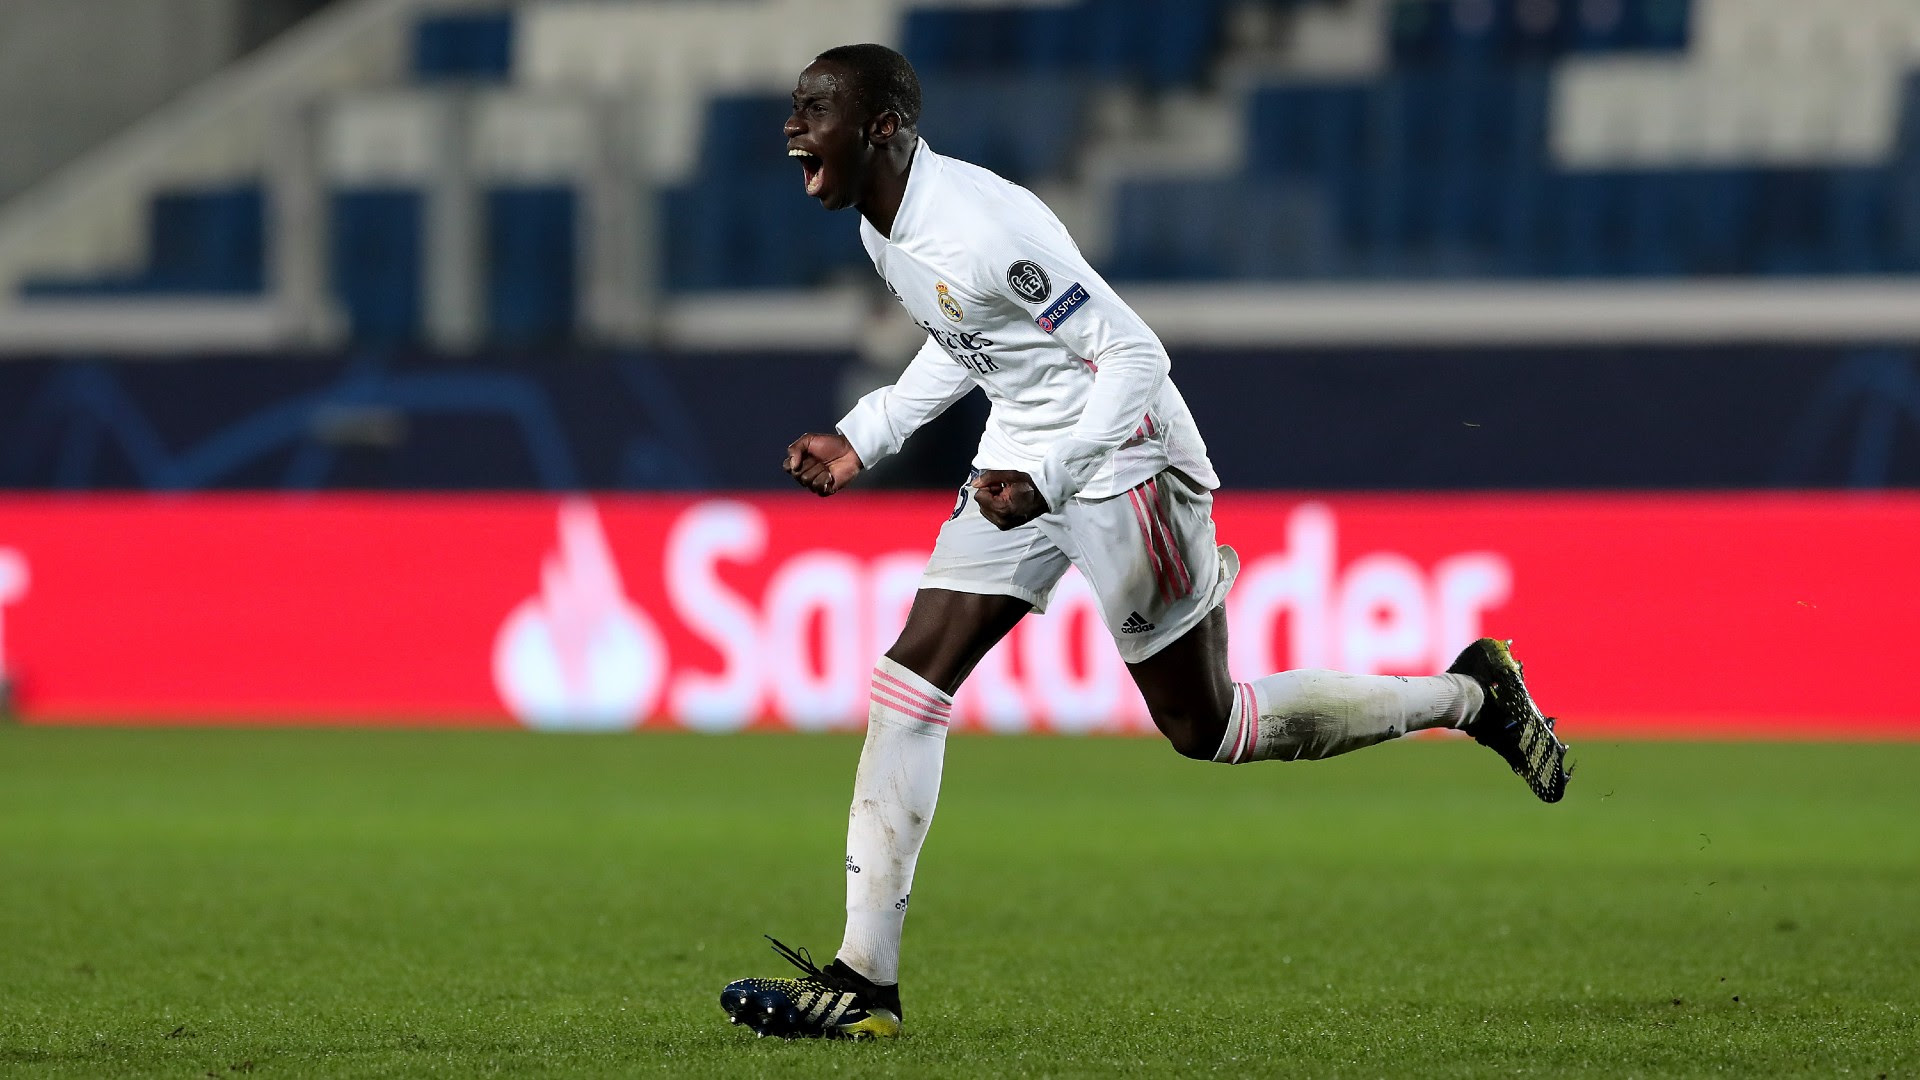 Mendy overwhelmed by first European goal for Real Madrid: 'I didn't even know how to celebrate'